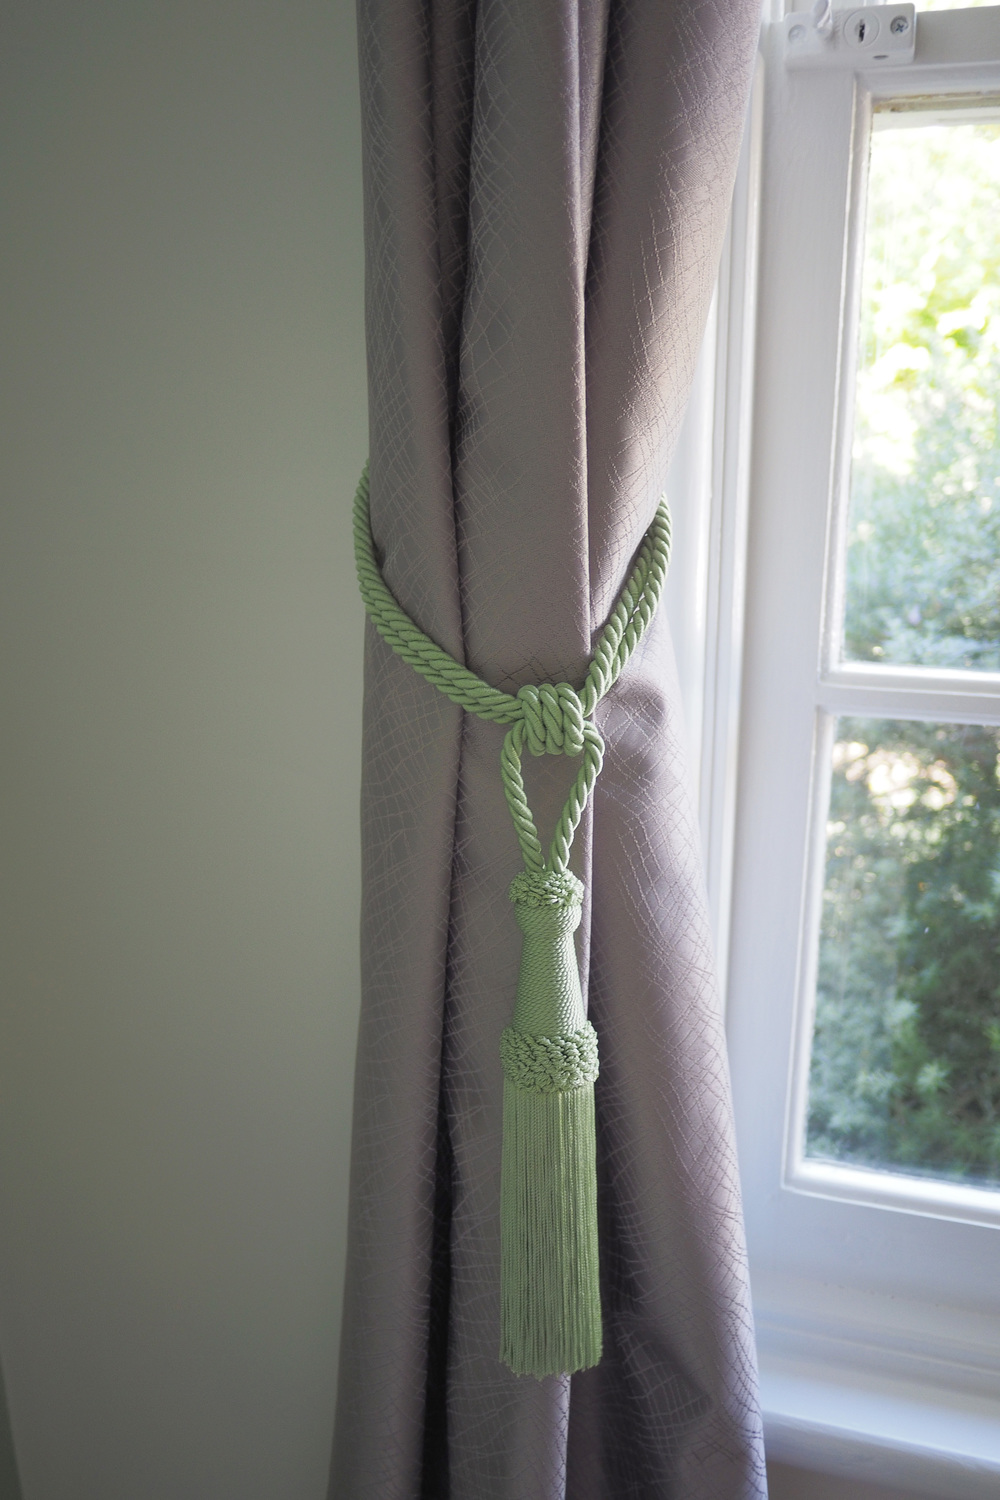 Bright curtain ties for   our son's bedroom makeover - The Organised You